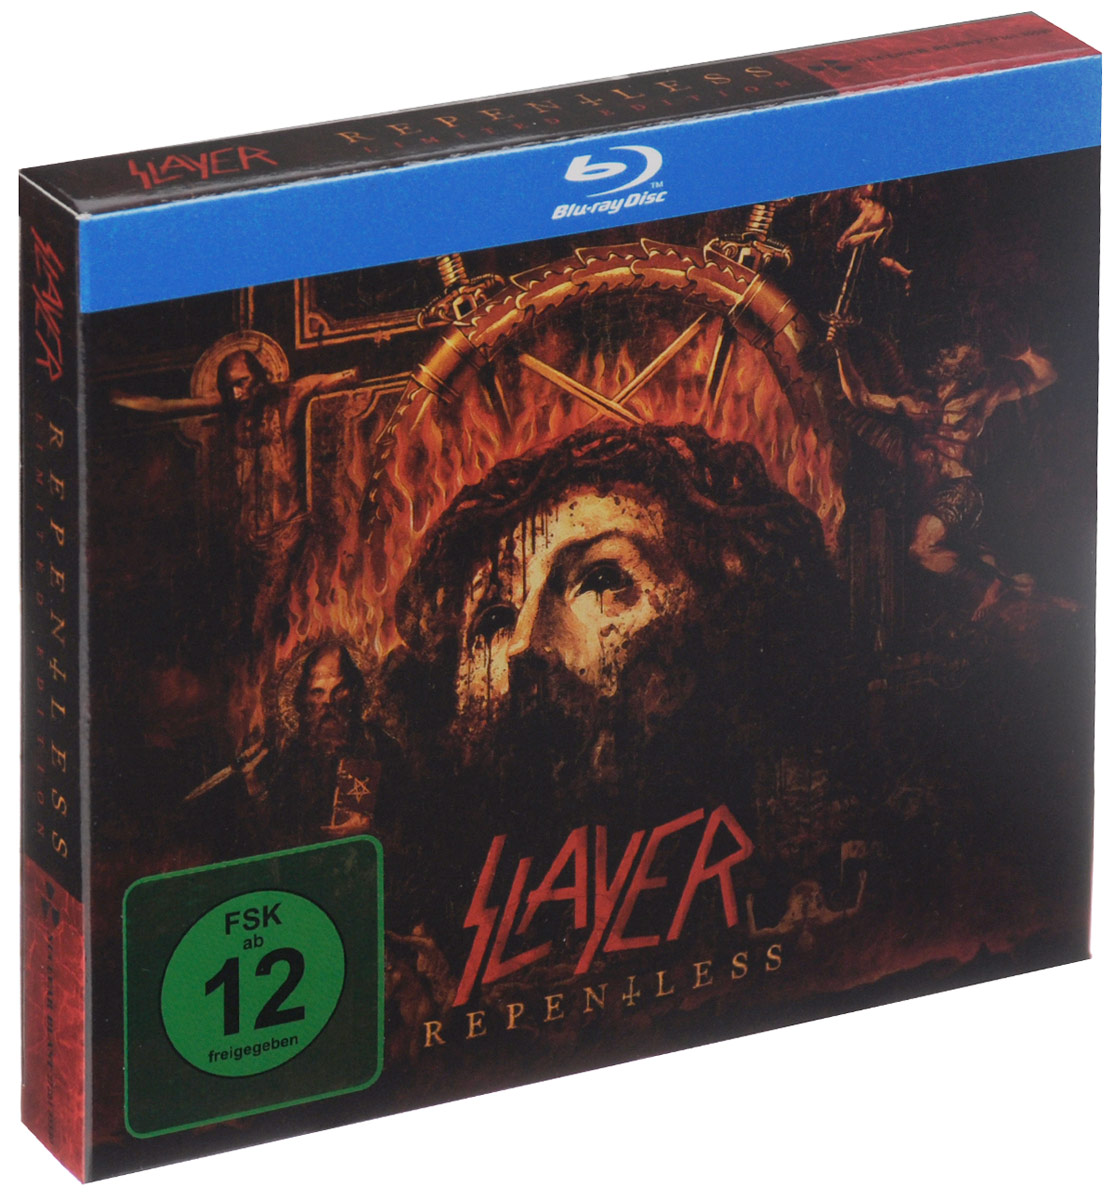 Slayer Slayer. Repentless. Limited Edition (CD + Blu-ray) semyon bychkov giuseppe verdi otello blu ray